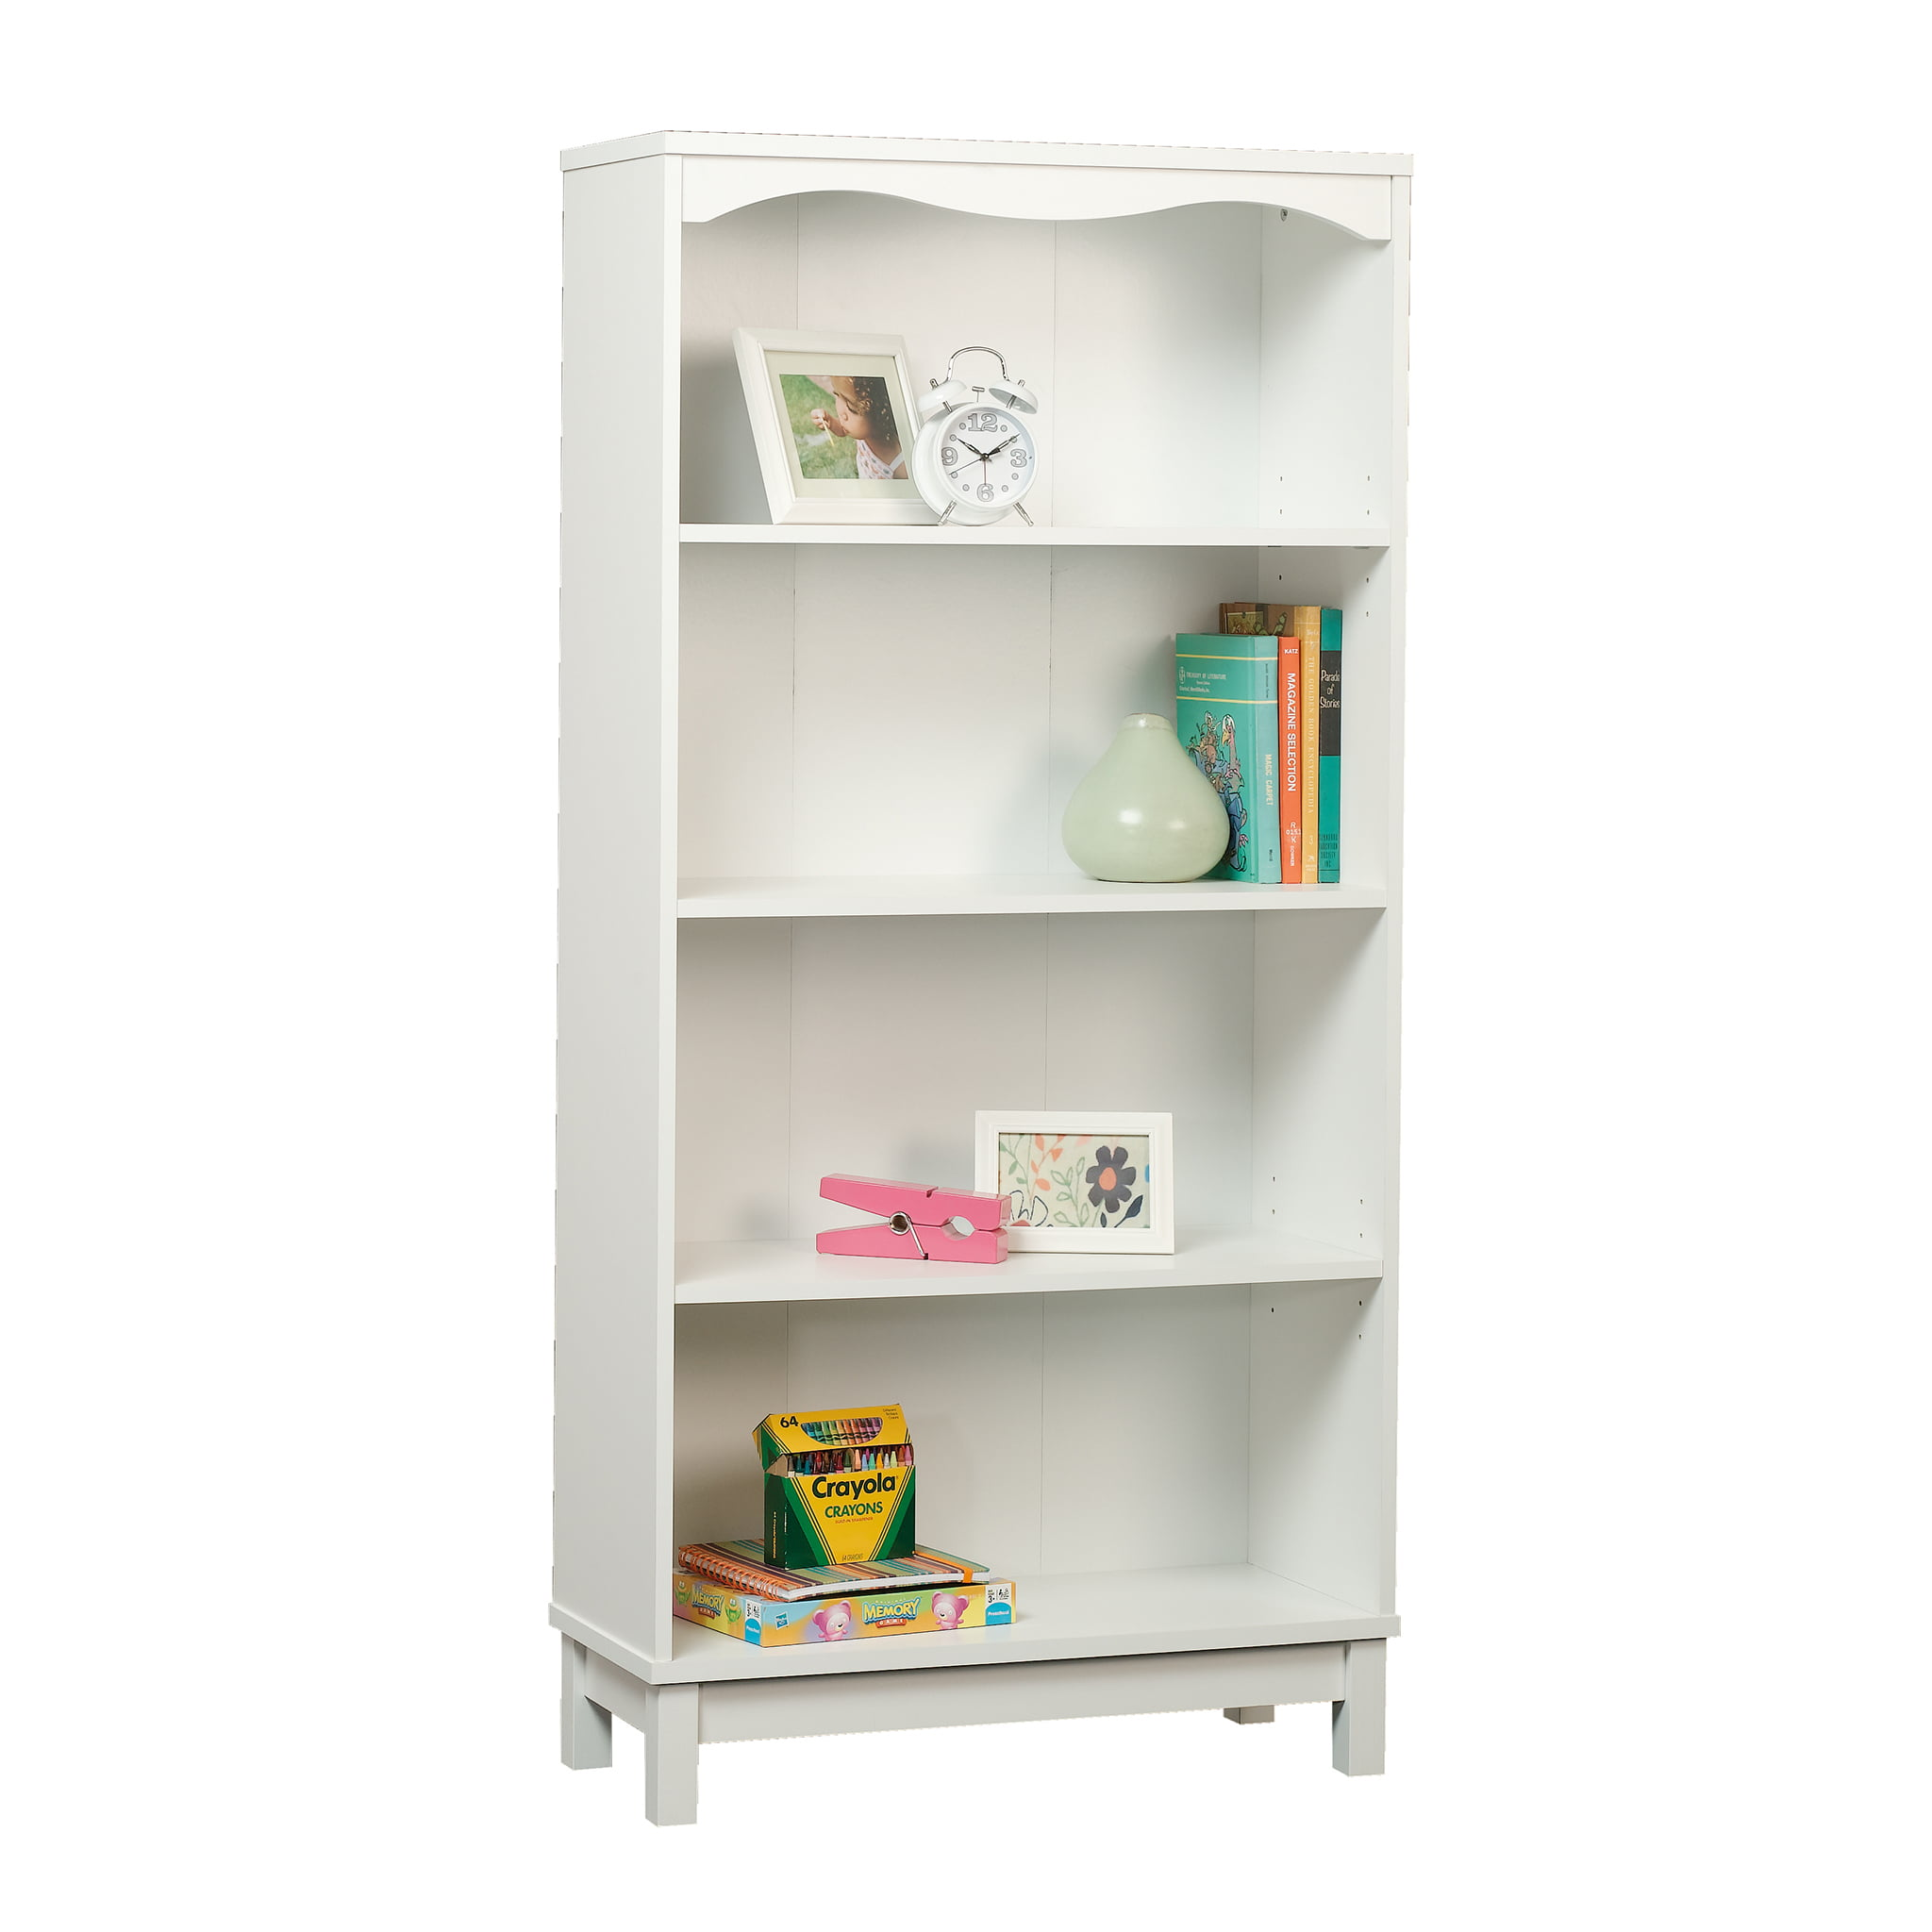 intriguing bed stunning container store bath small bookshelf and with stackable storage market charm memorable world bookcase top thrilling size of uncategorized in wondrou foldable shelf shelves folding beyond off f collapsible full